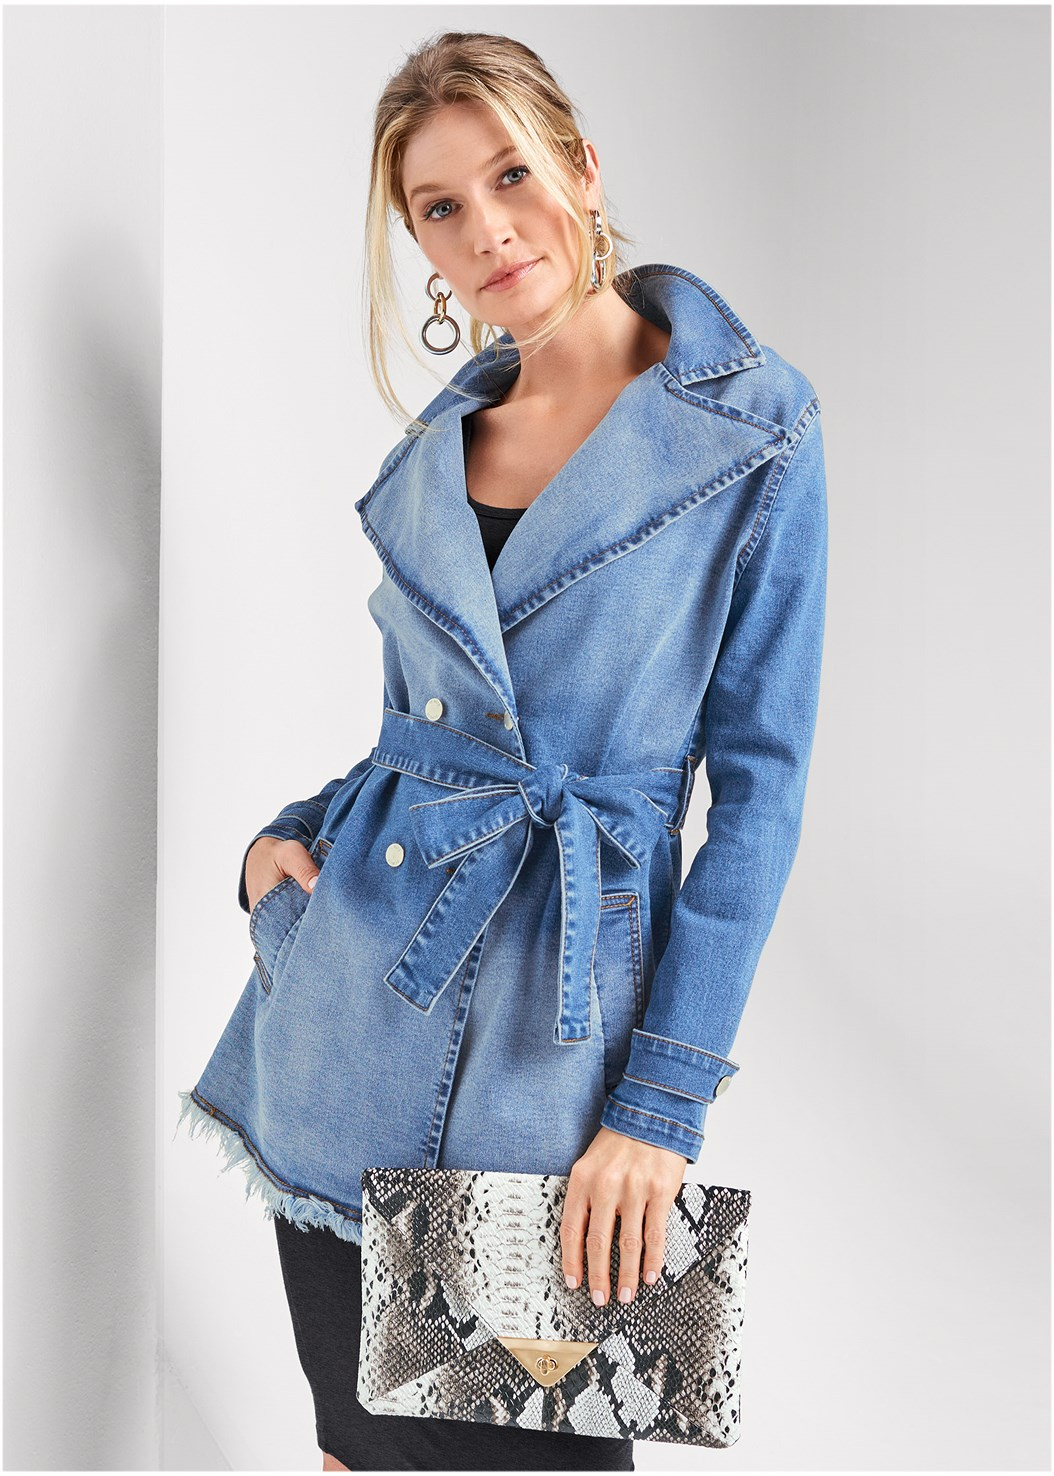 Denim Trench Coat,Sleeveless Ruched Bodycon Midi Dress,Animal Lace Demi Bra,Mix Metal Link Earrings,Python Clutch